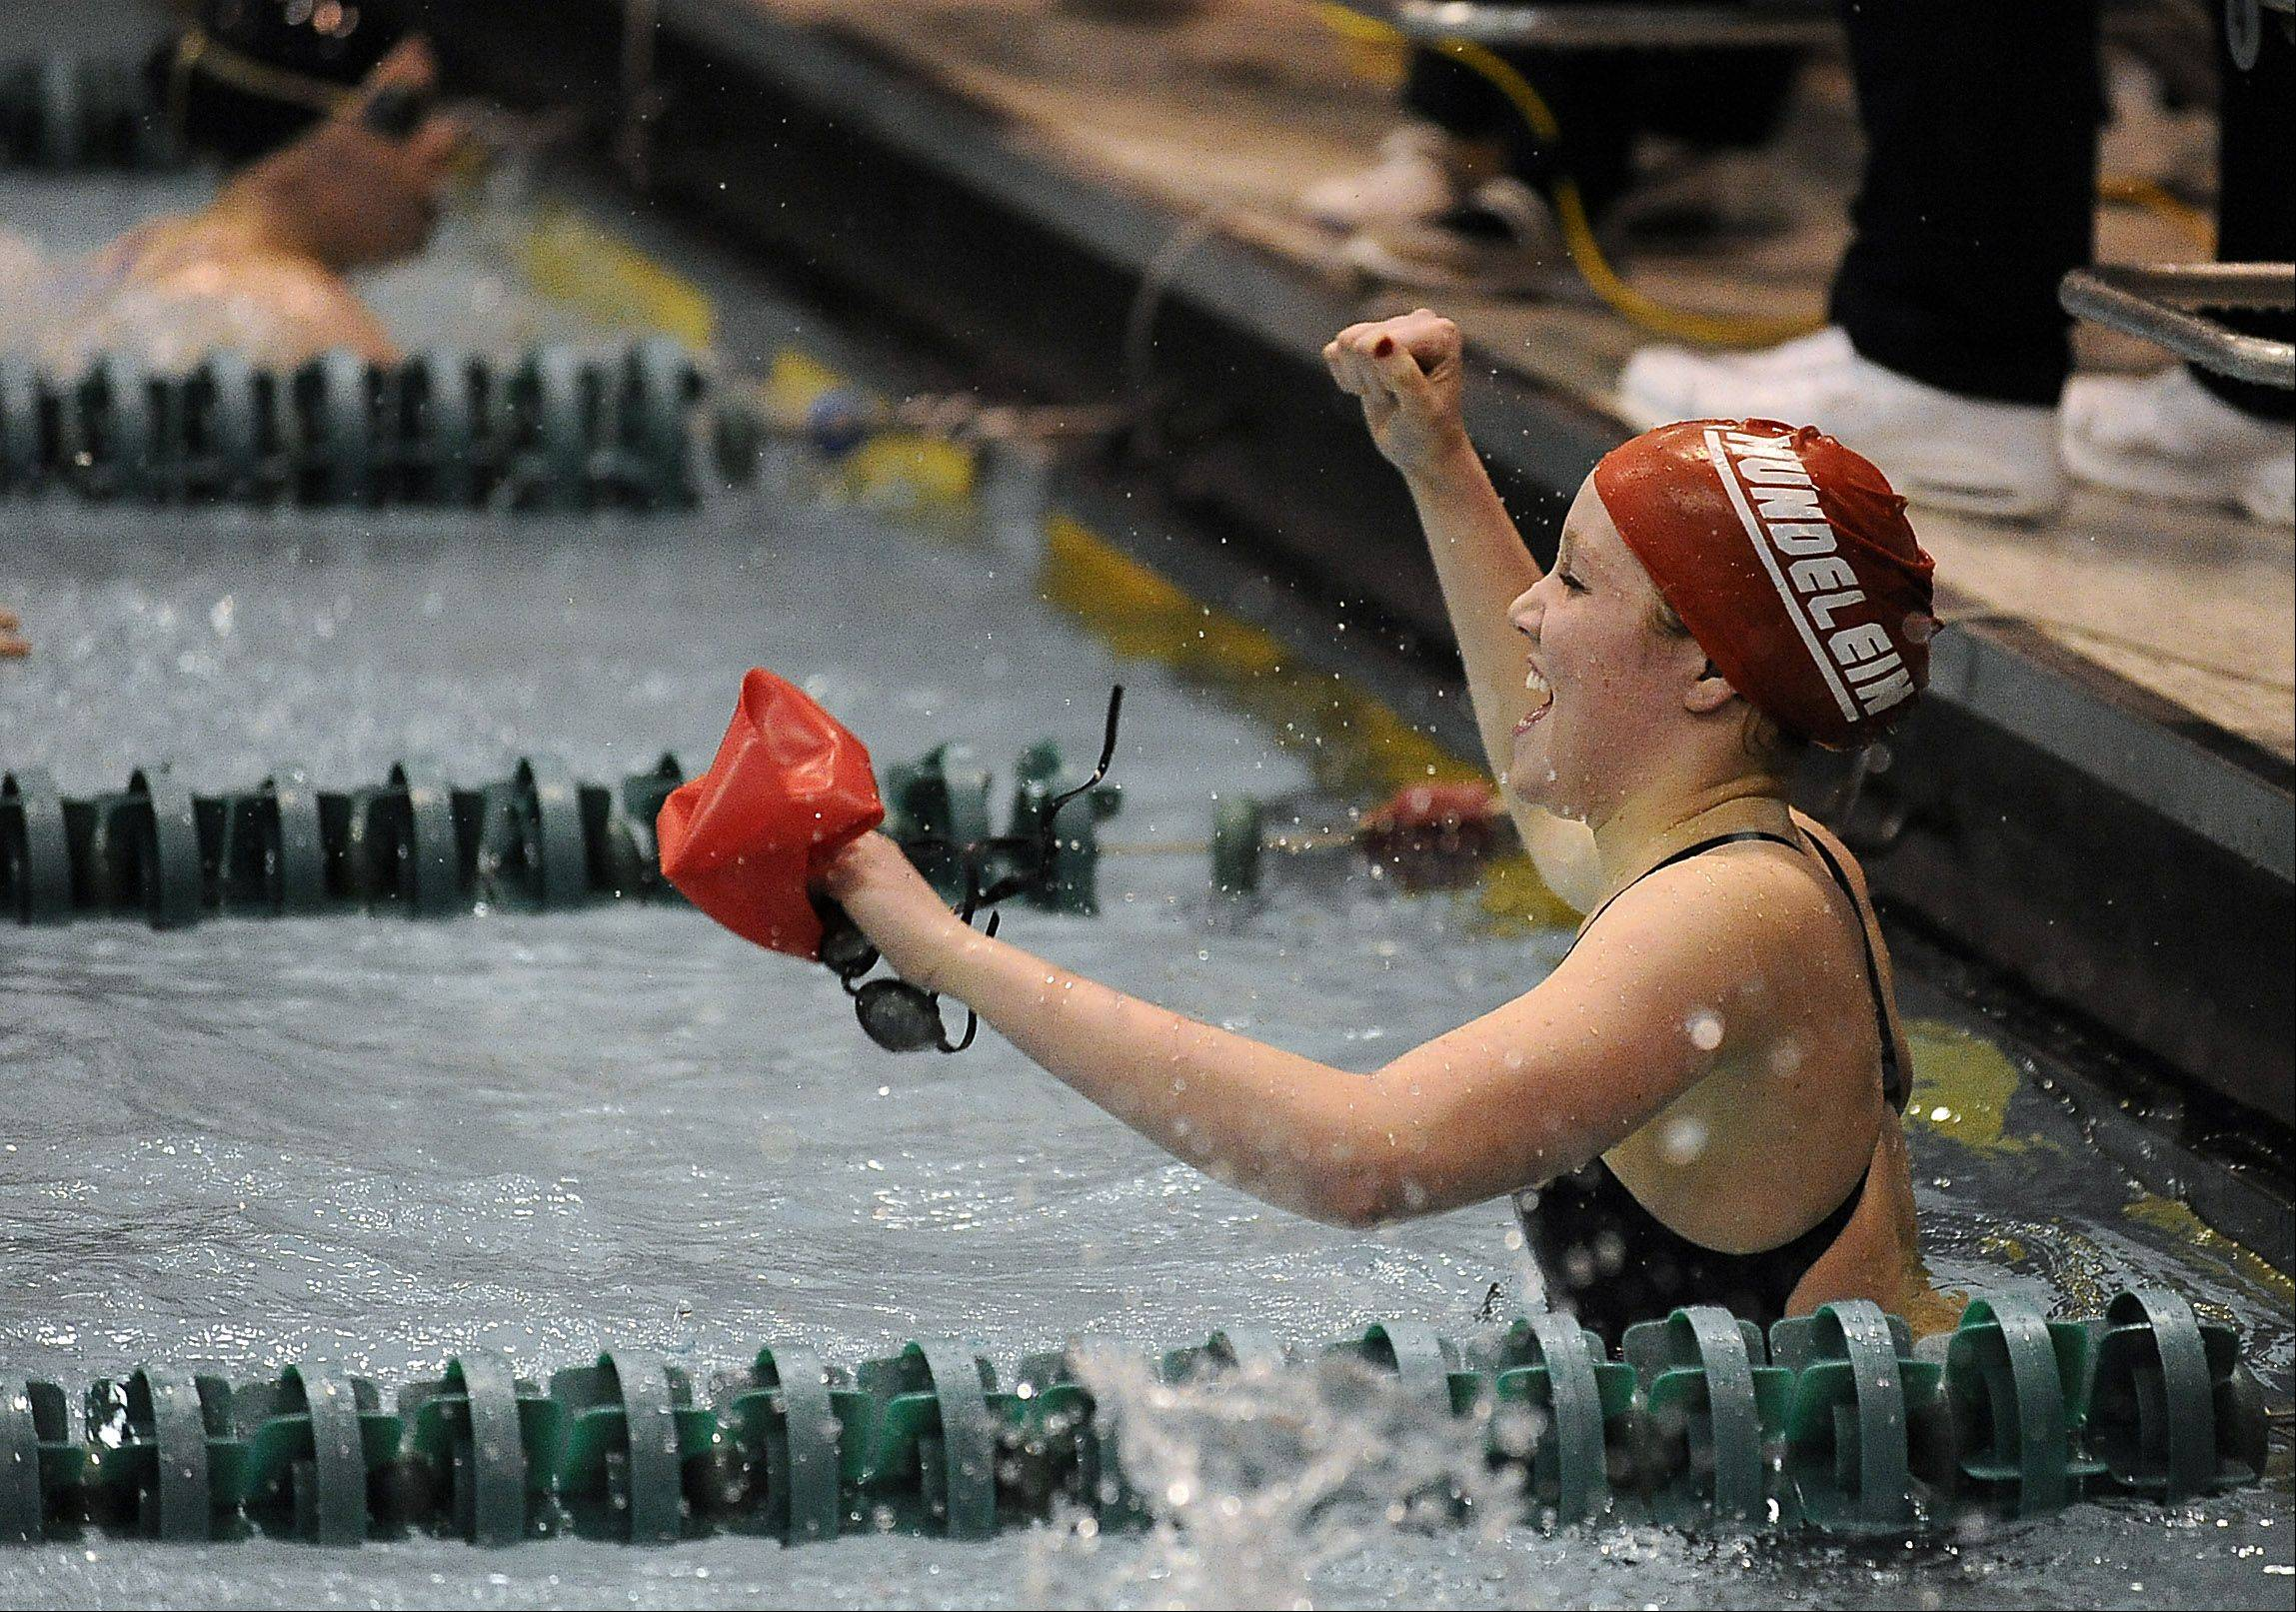 Mundelein's Erin Falconer celebrates after the 200-yardd freestyle in the girls swimming state meet prelims at New Trier High School on Friday.